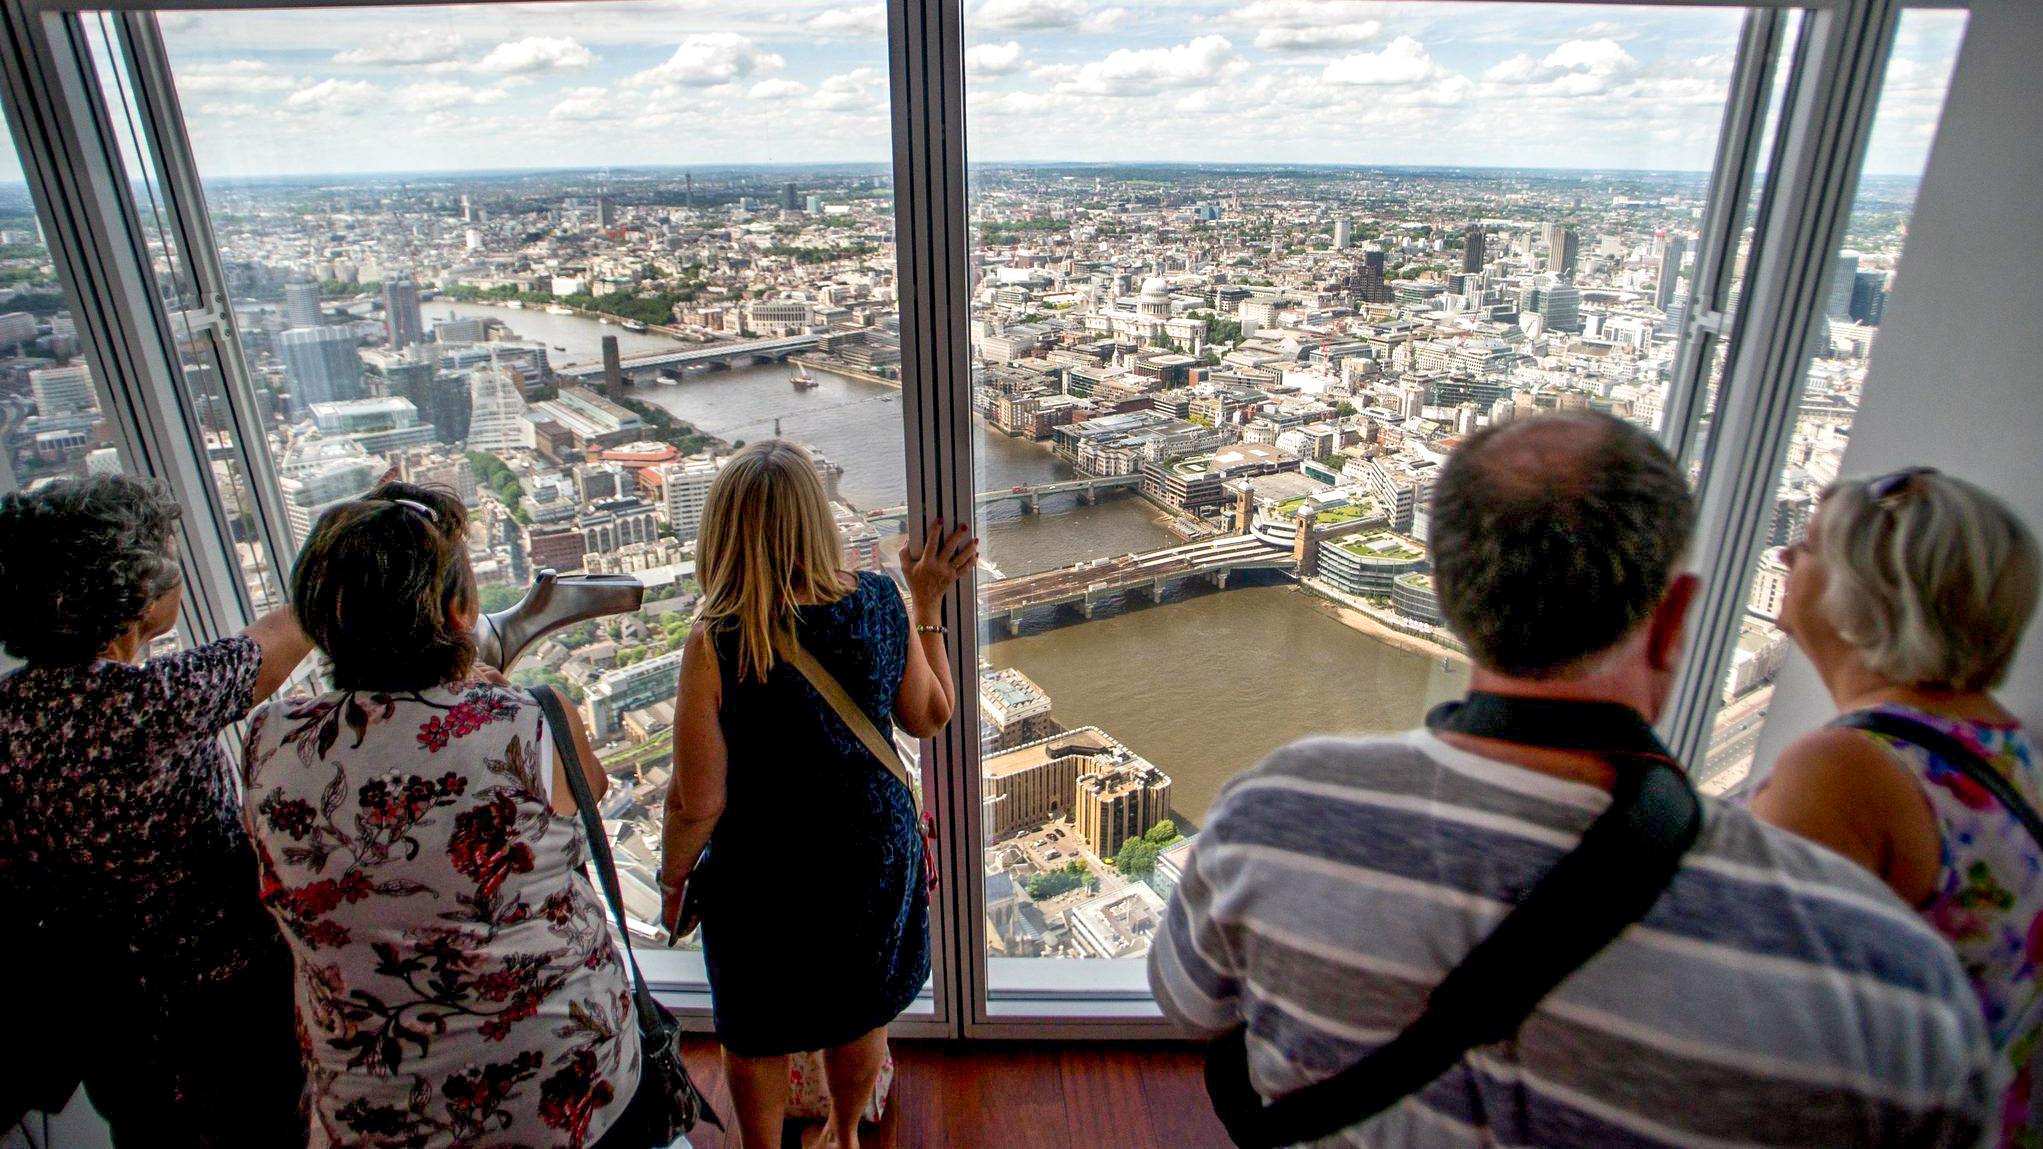 La Vista dallo Shard